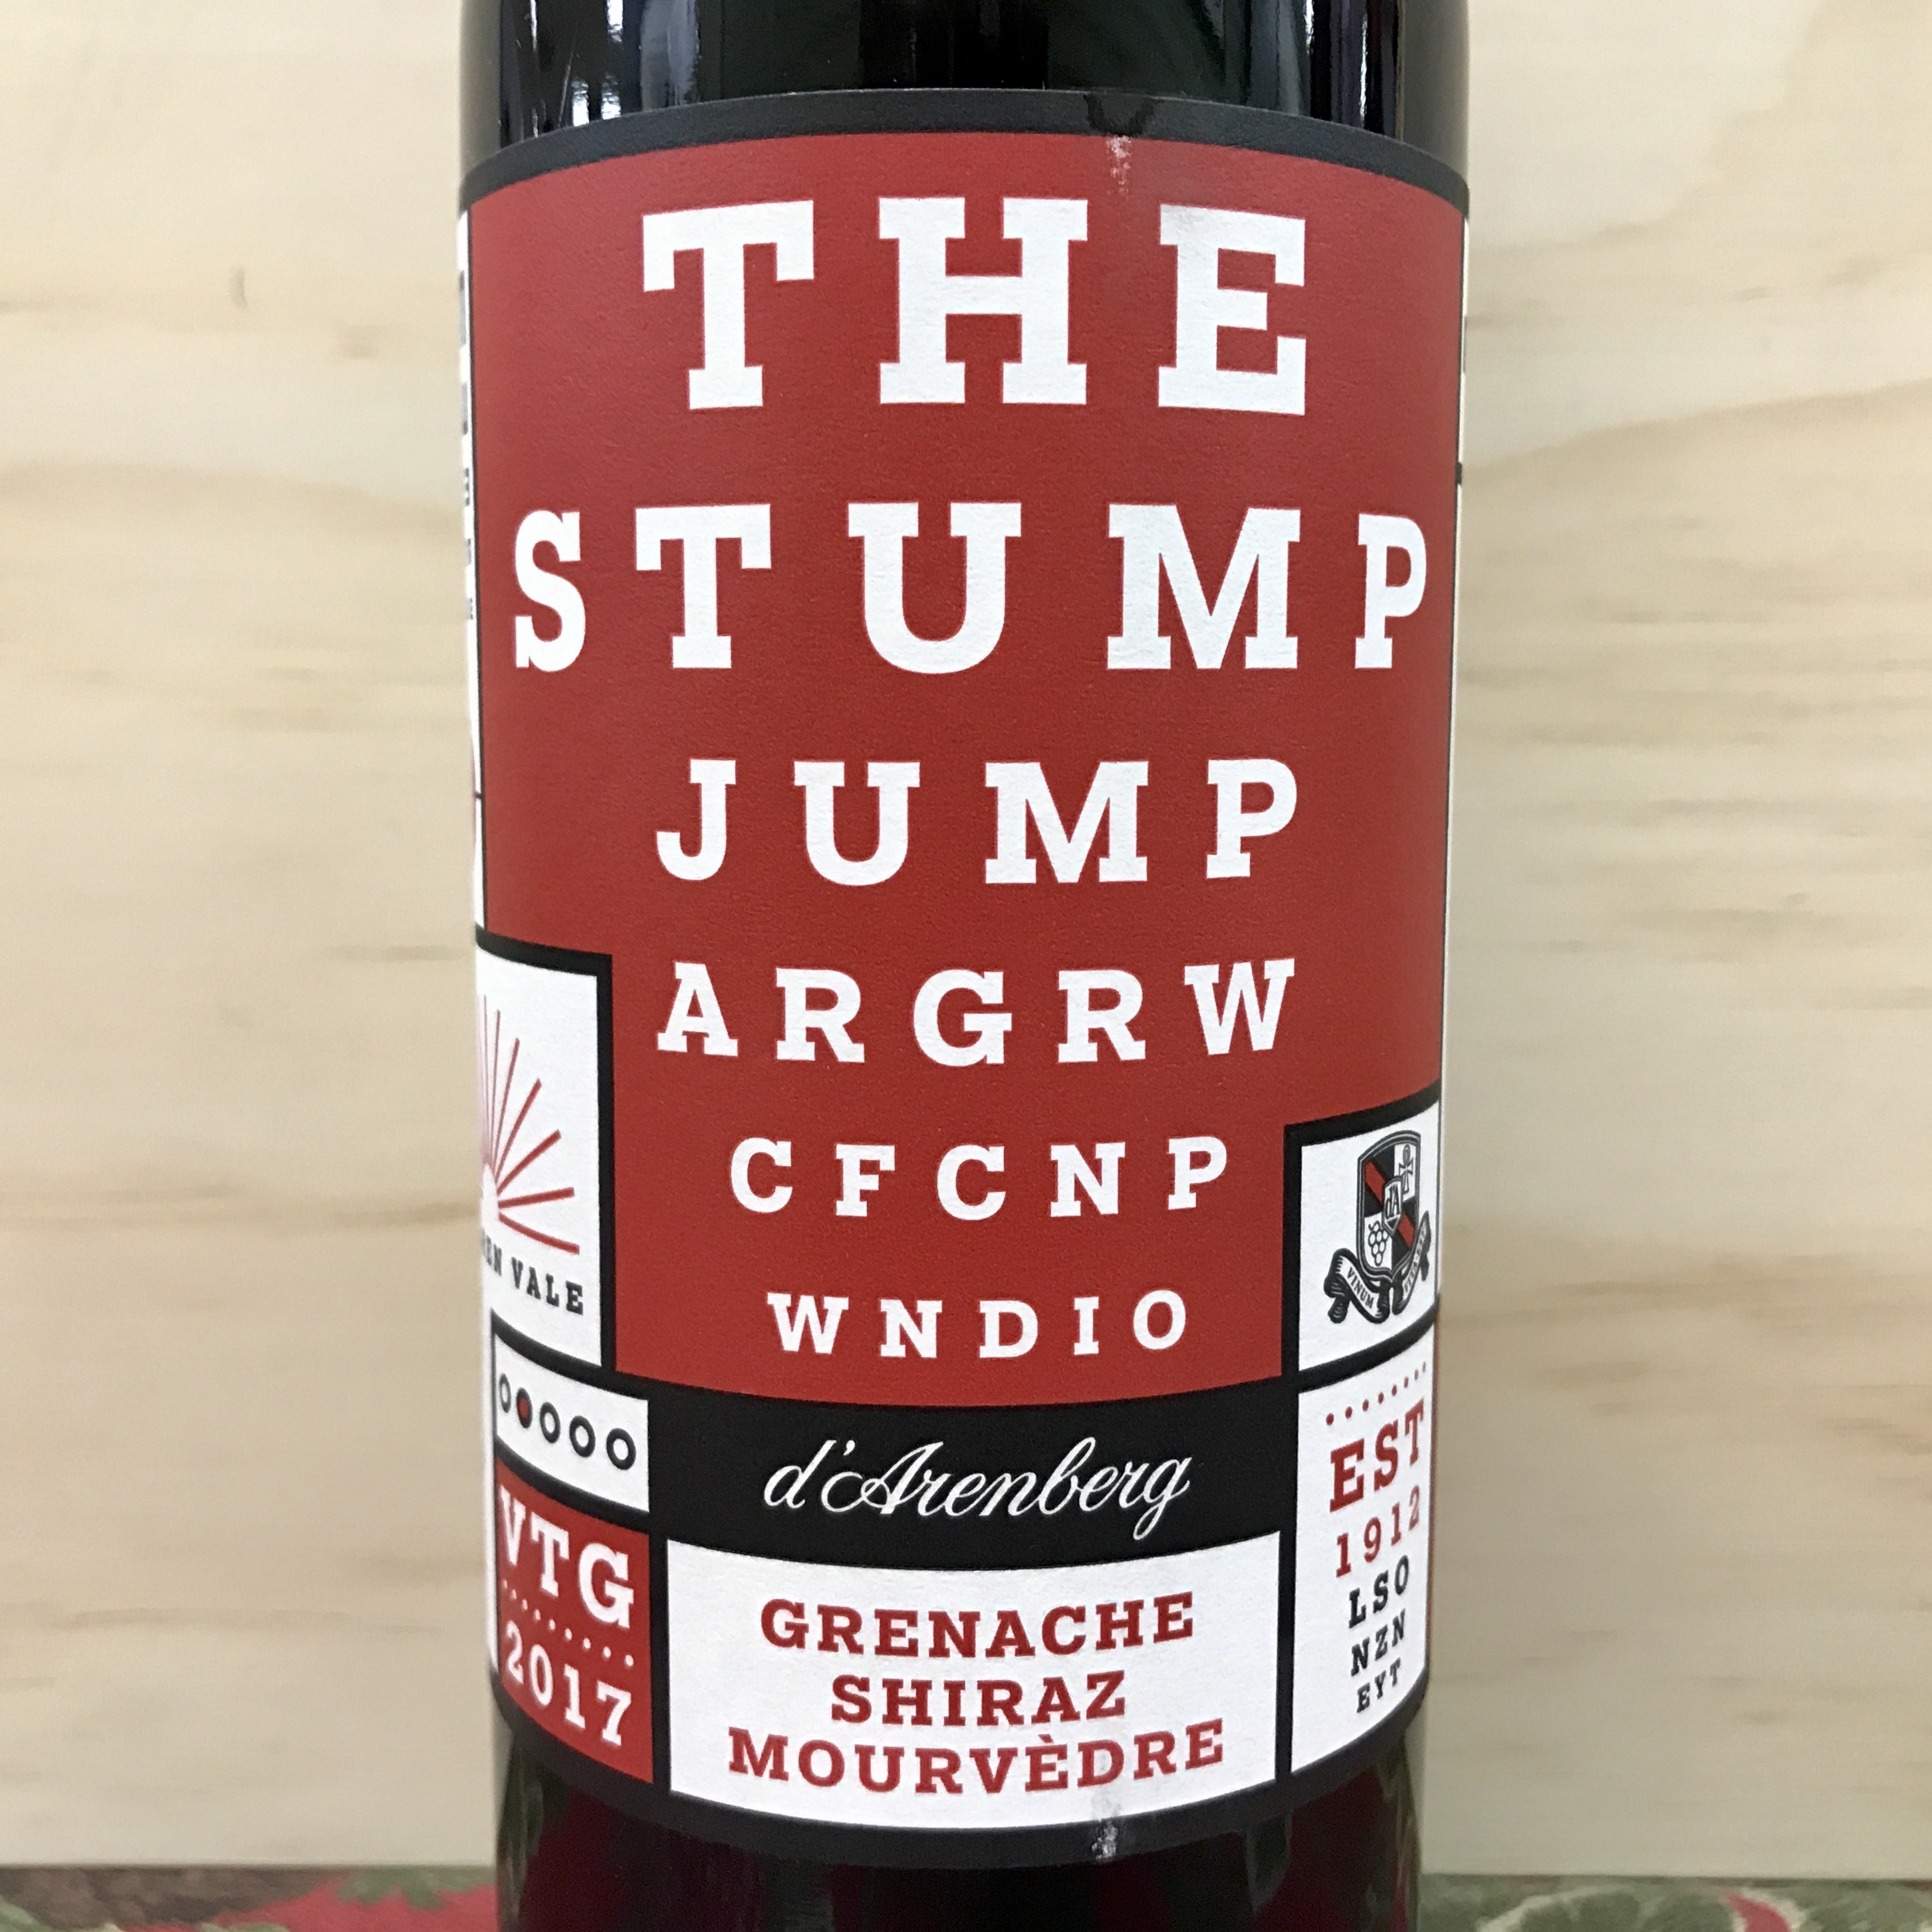 D'Arenberg The Stump Jump Grenache Shiraz Mouvedre 2017